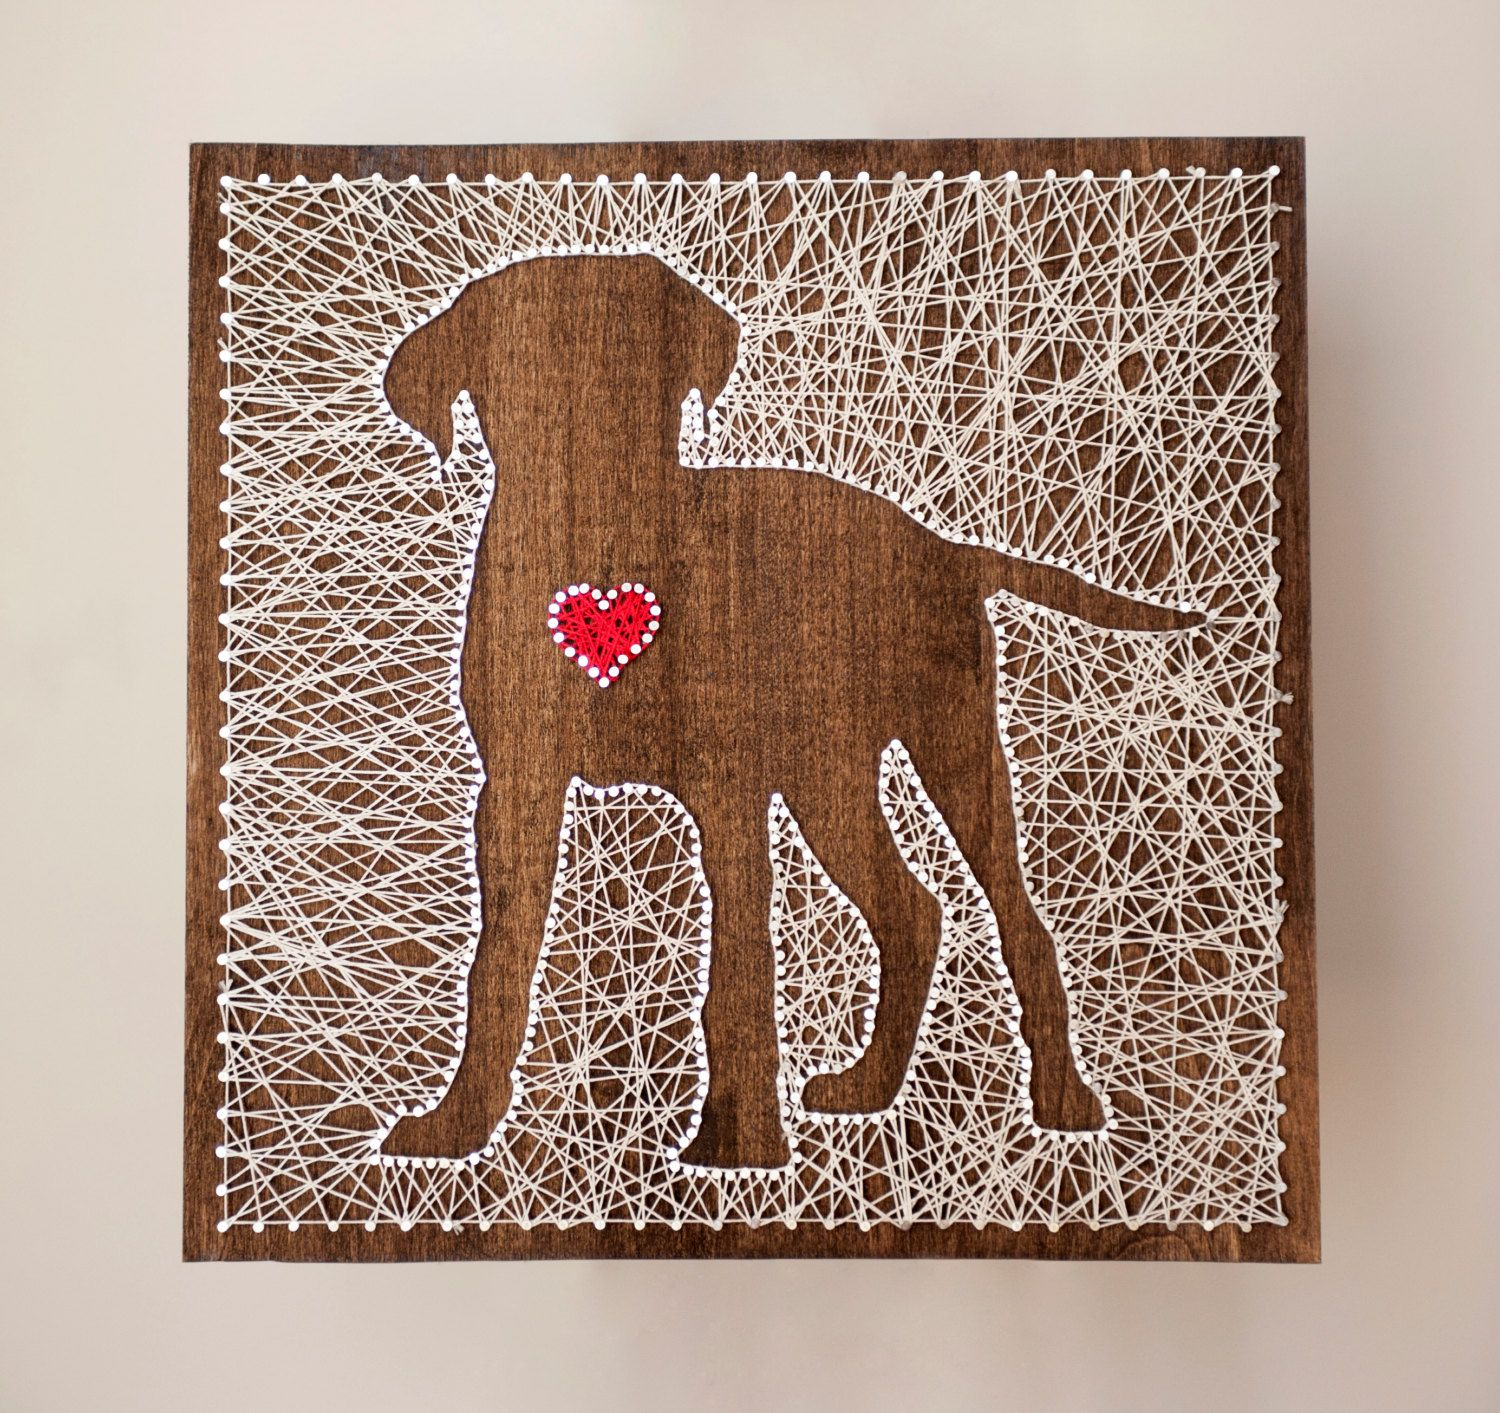 unique string art related items  etsy  string art